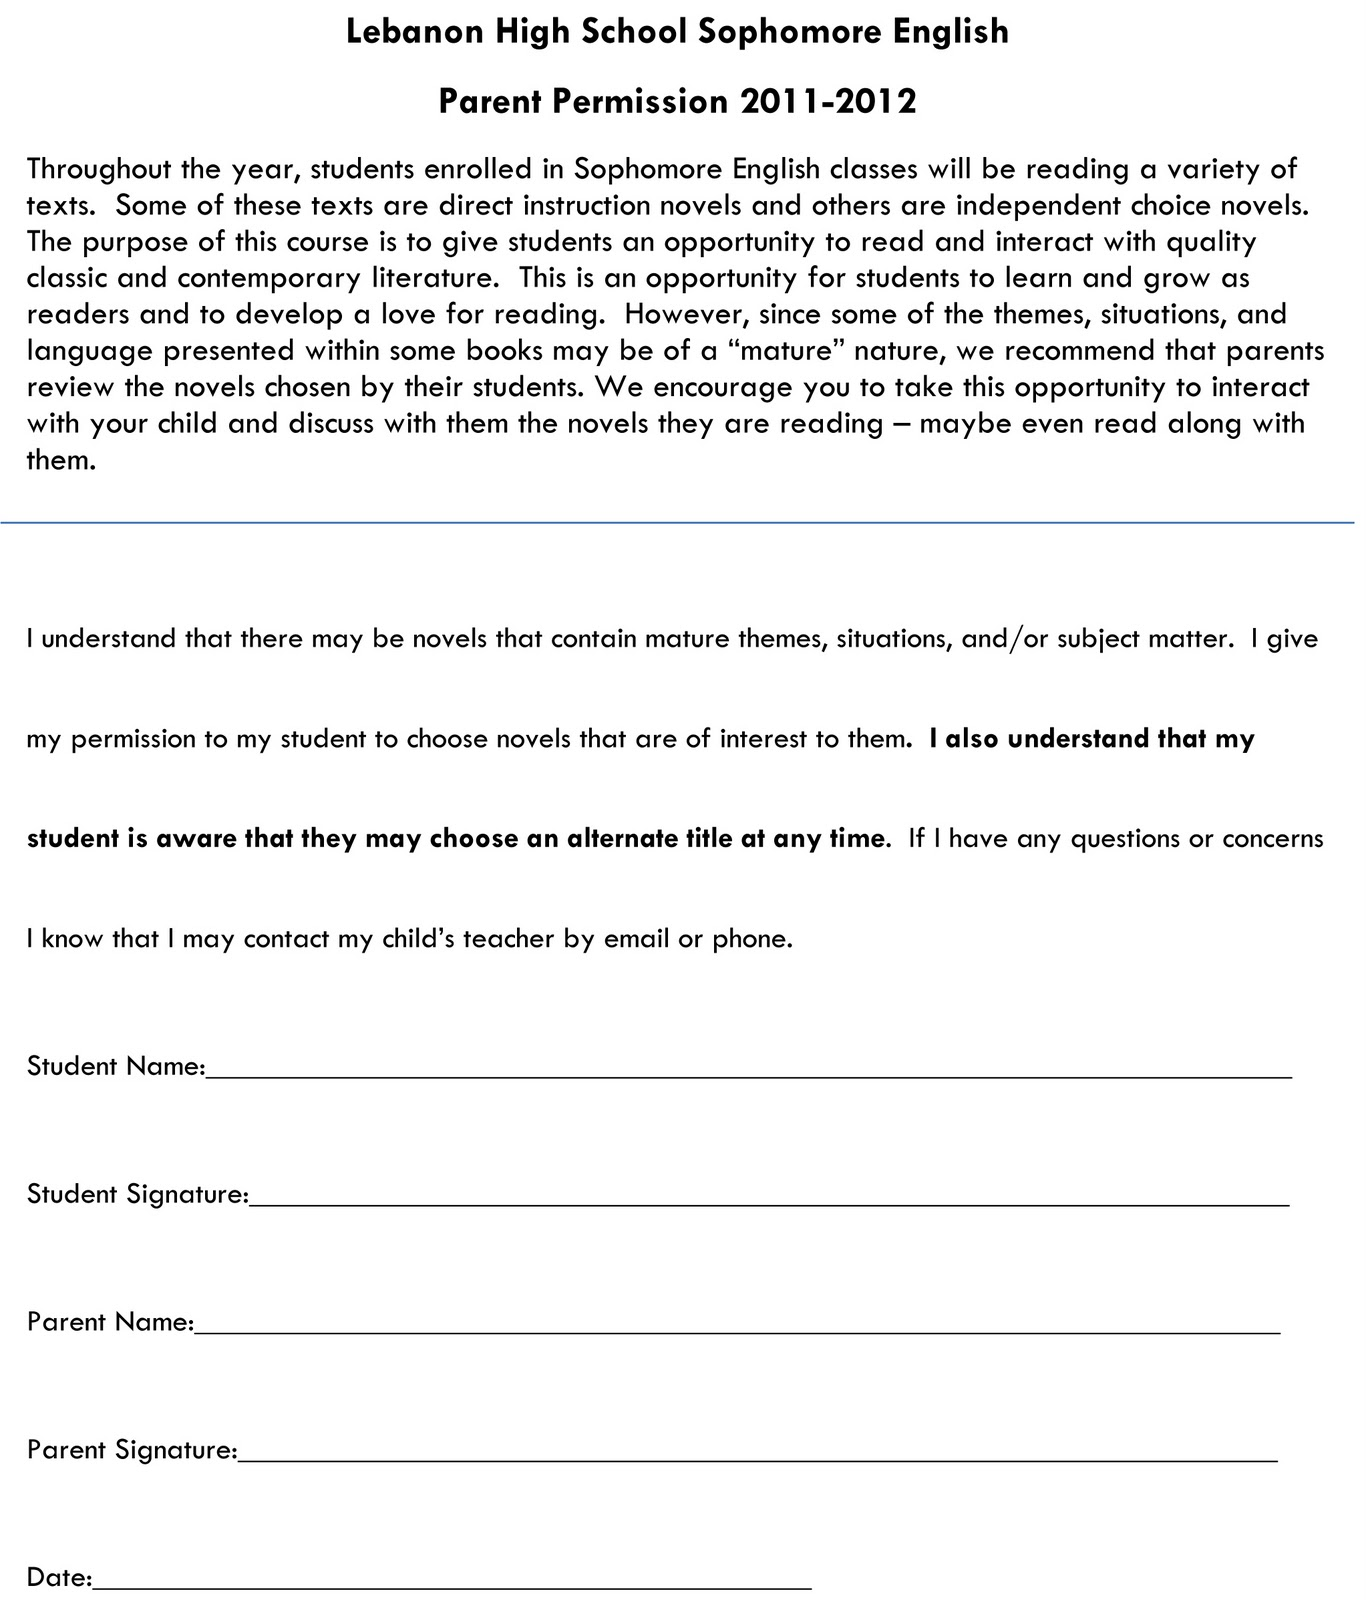 Parent consent letter for jollibee 28 images permission letter parent consent letter for jollibee school up permission form template thecheapjerseys Choice Image